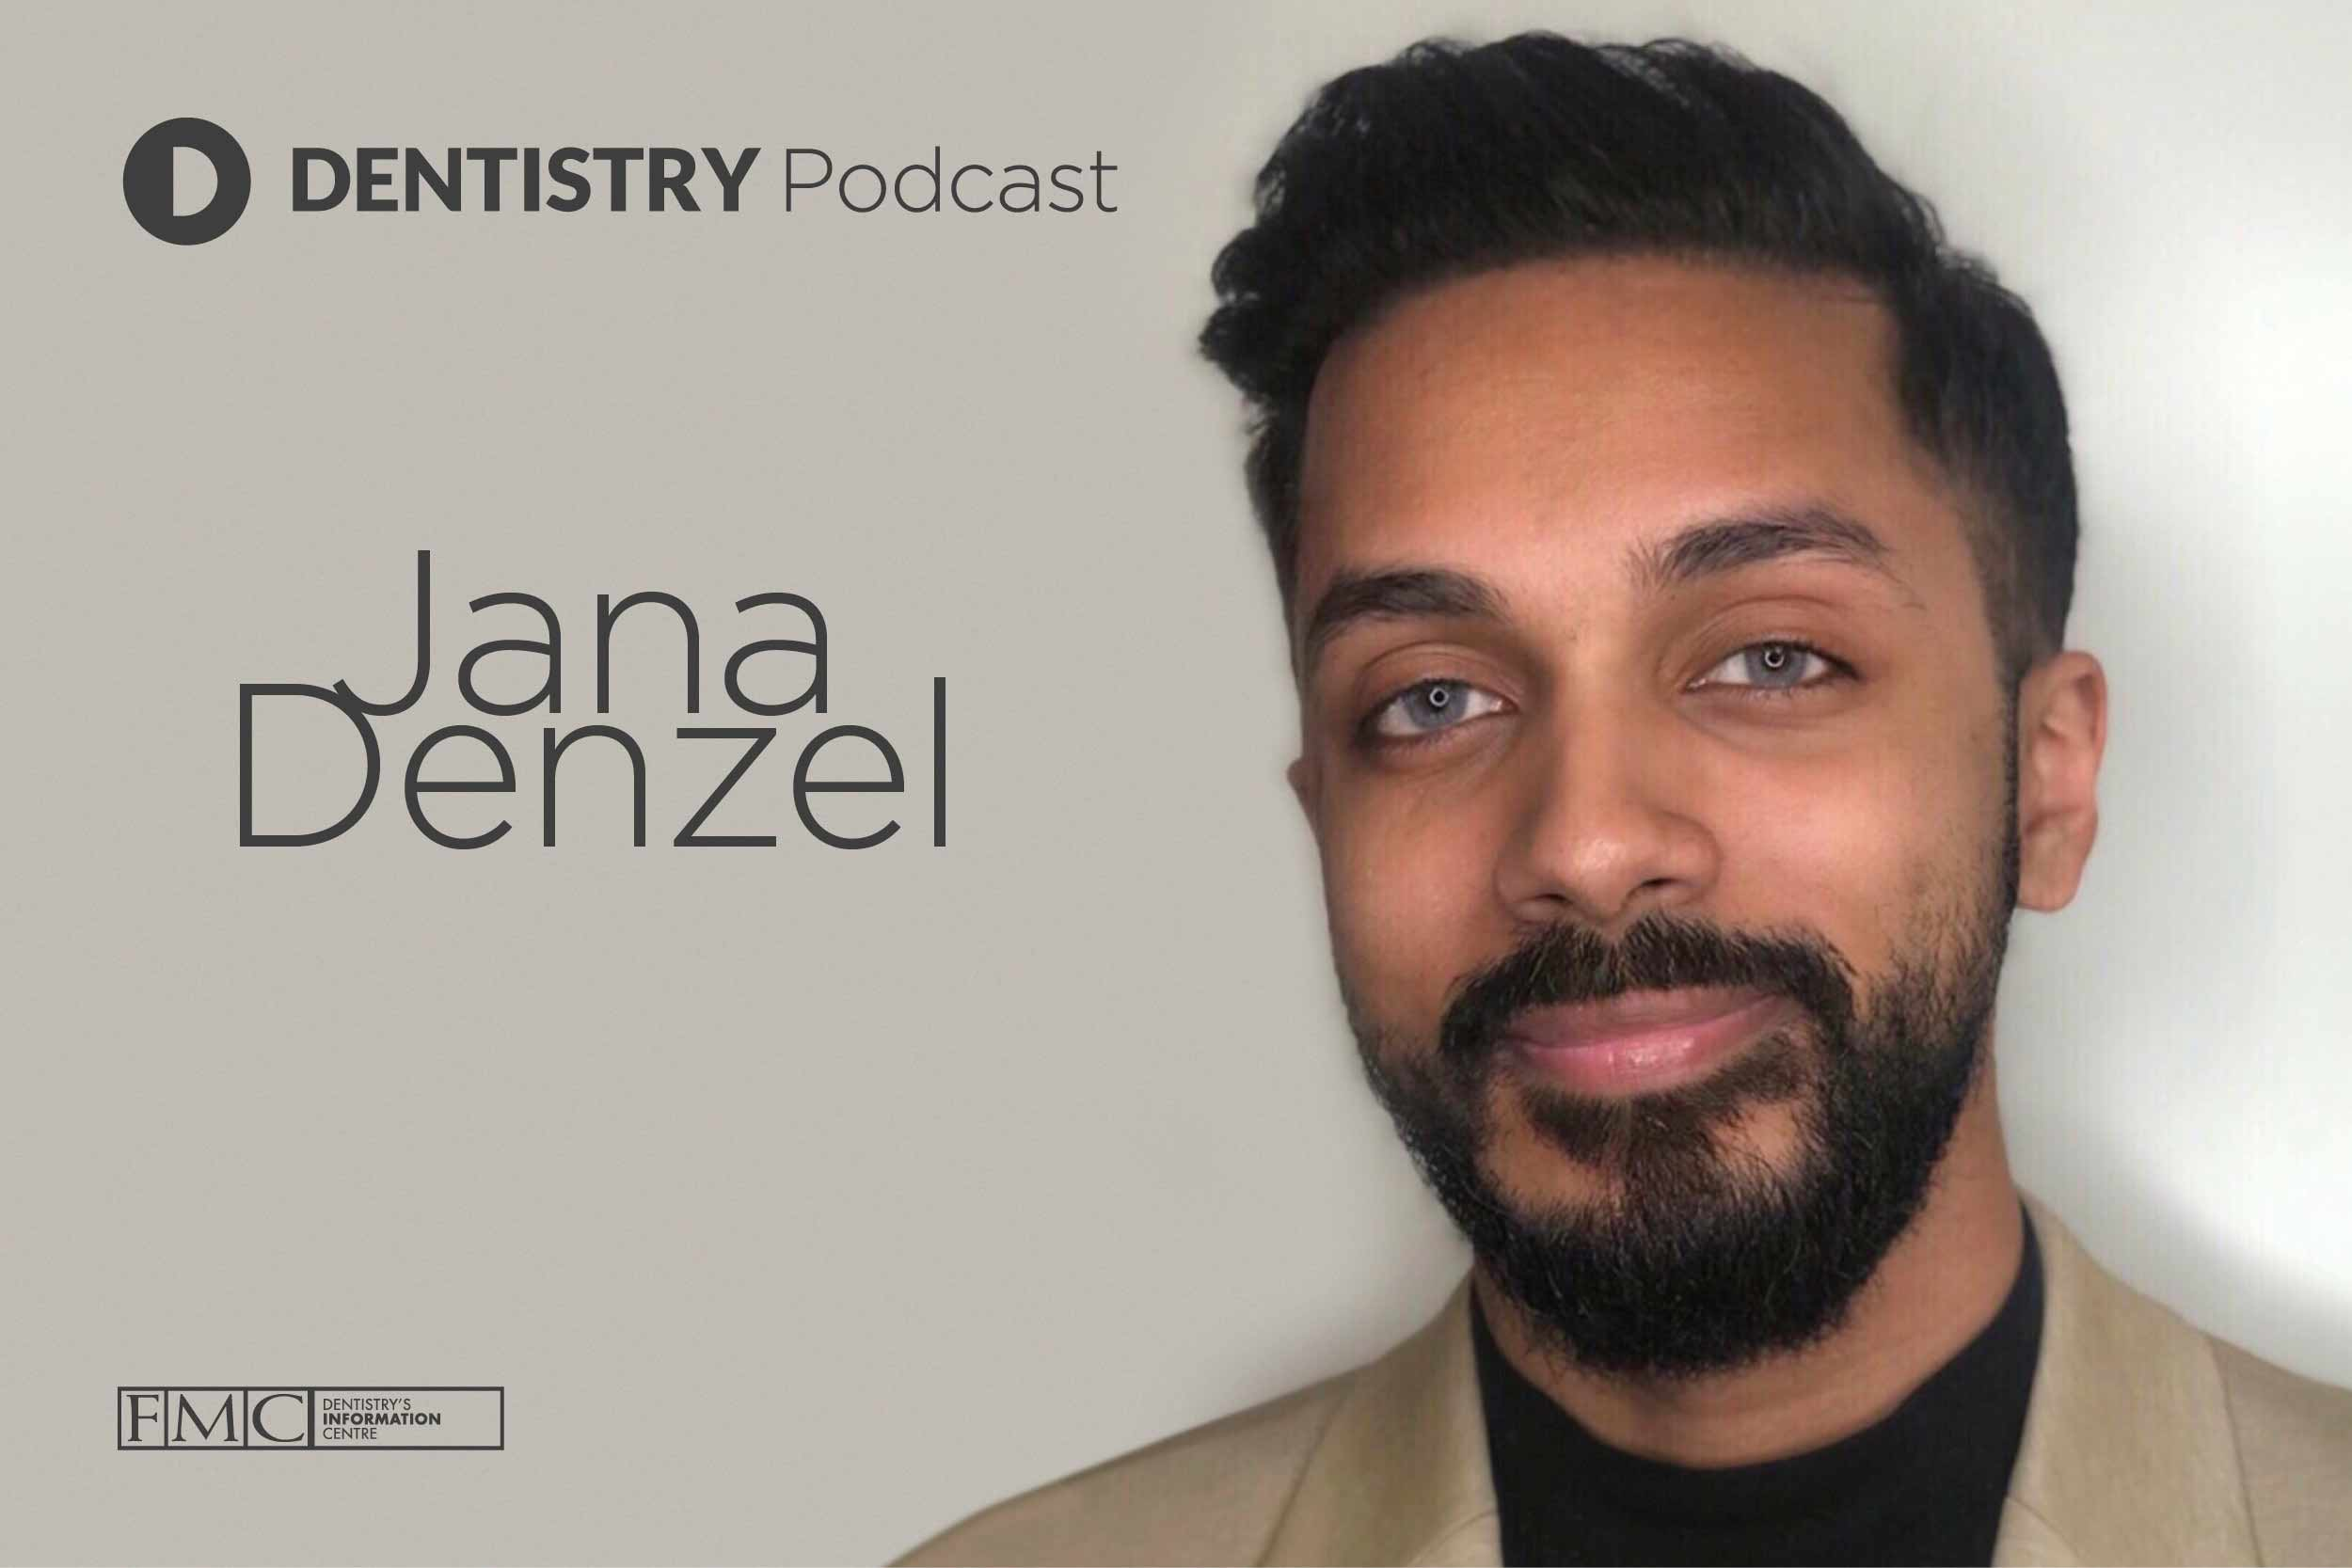 In our latest podcast episode, Jana Denzel discusses his dental journey and his holistic approach to dentistry